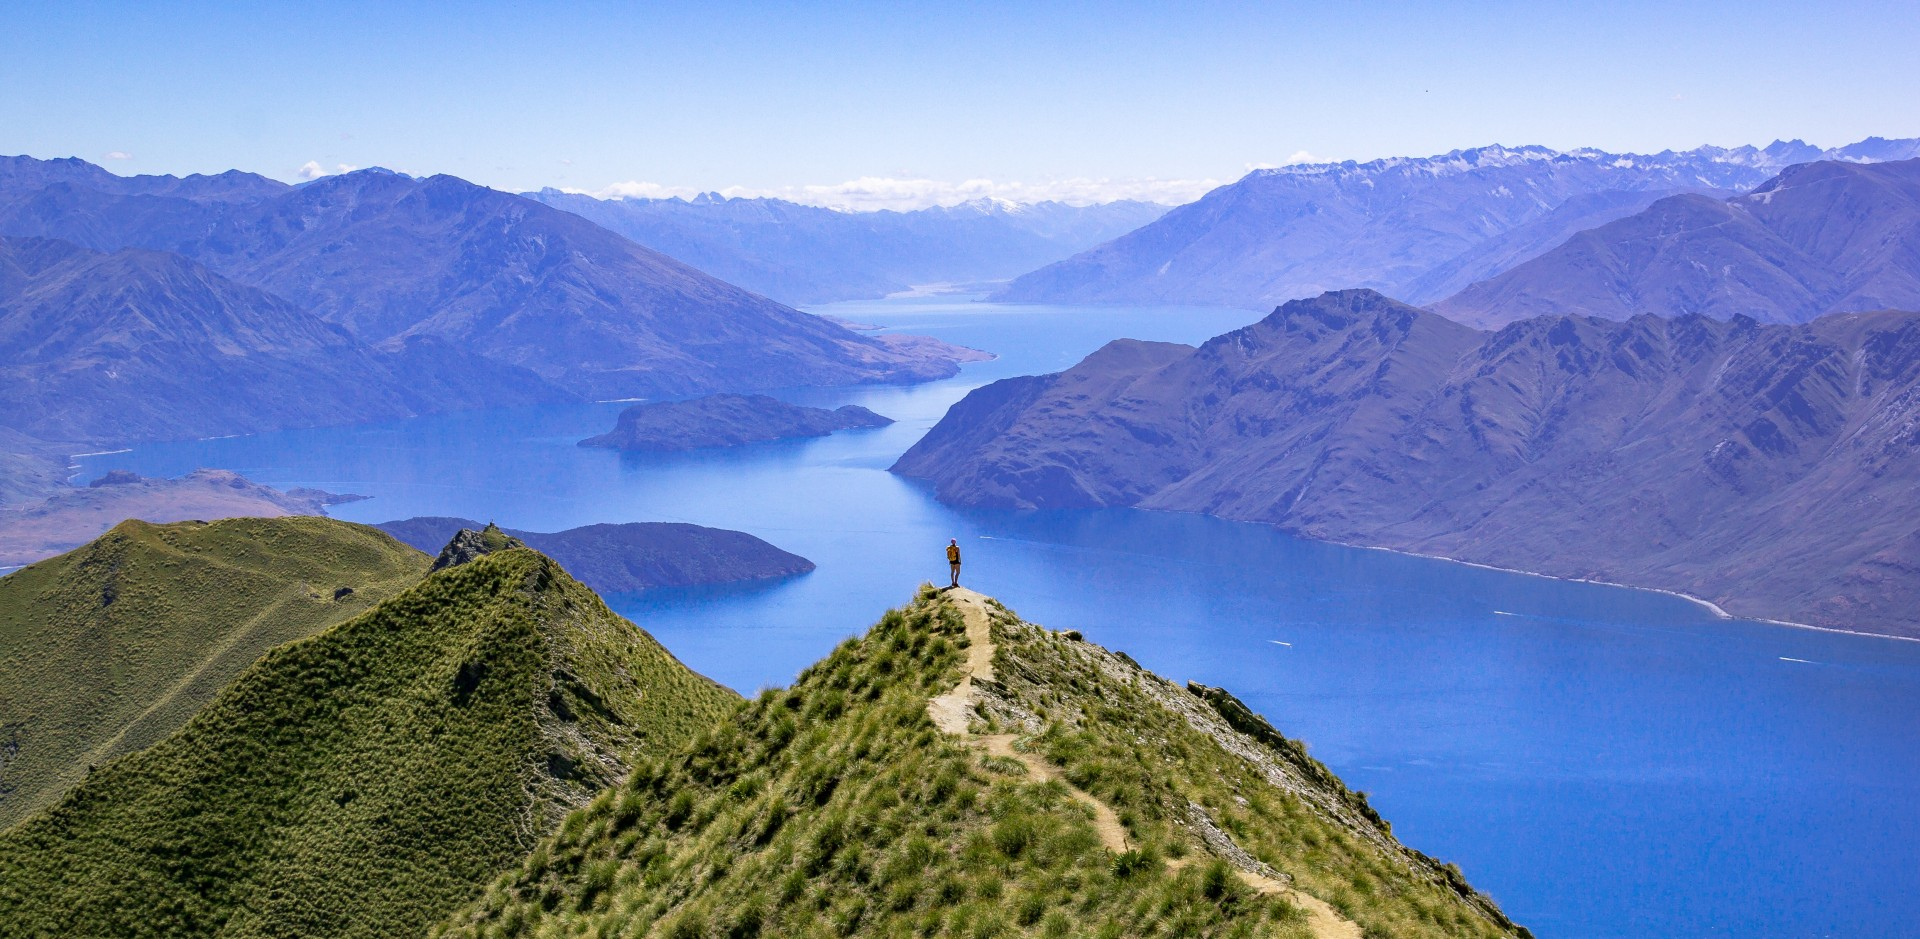 Looking out over Lake Wanaka in New Zealand